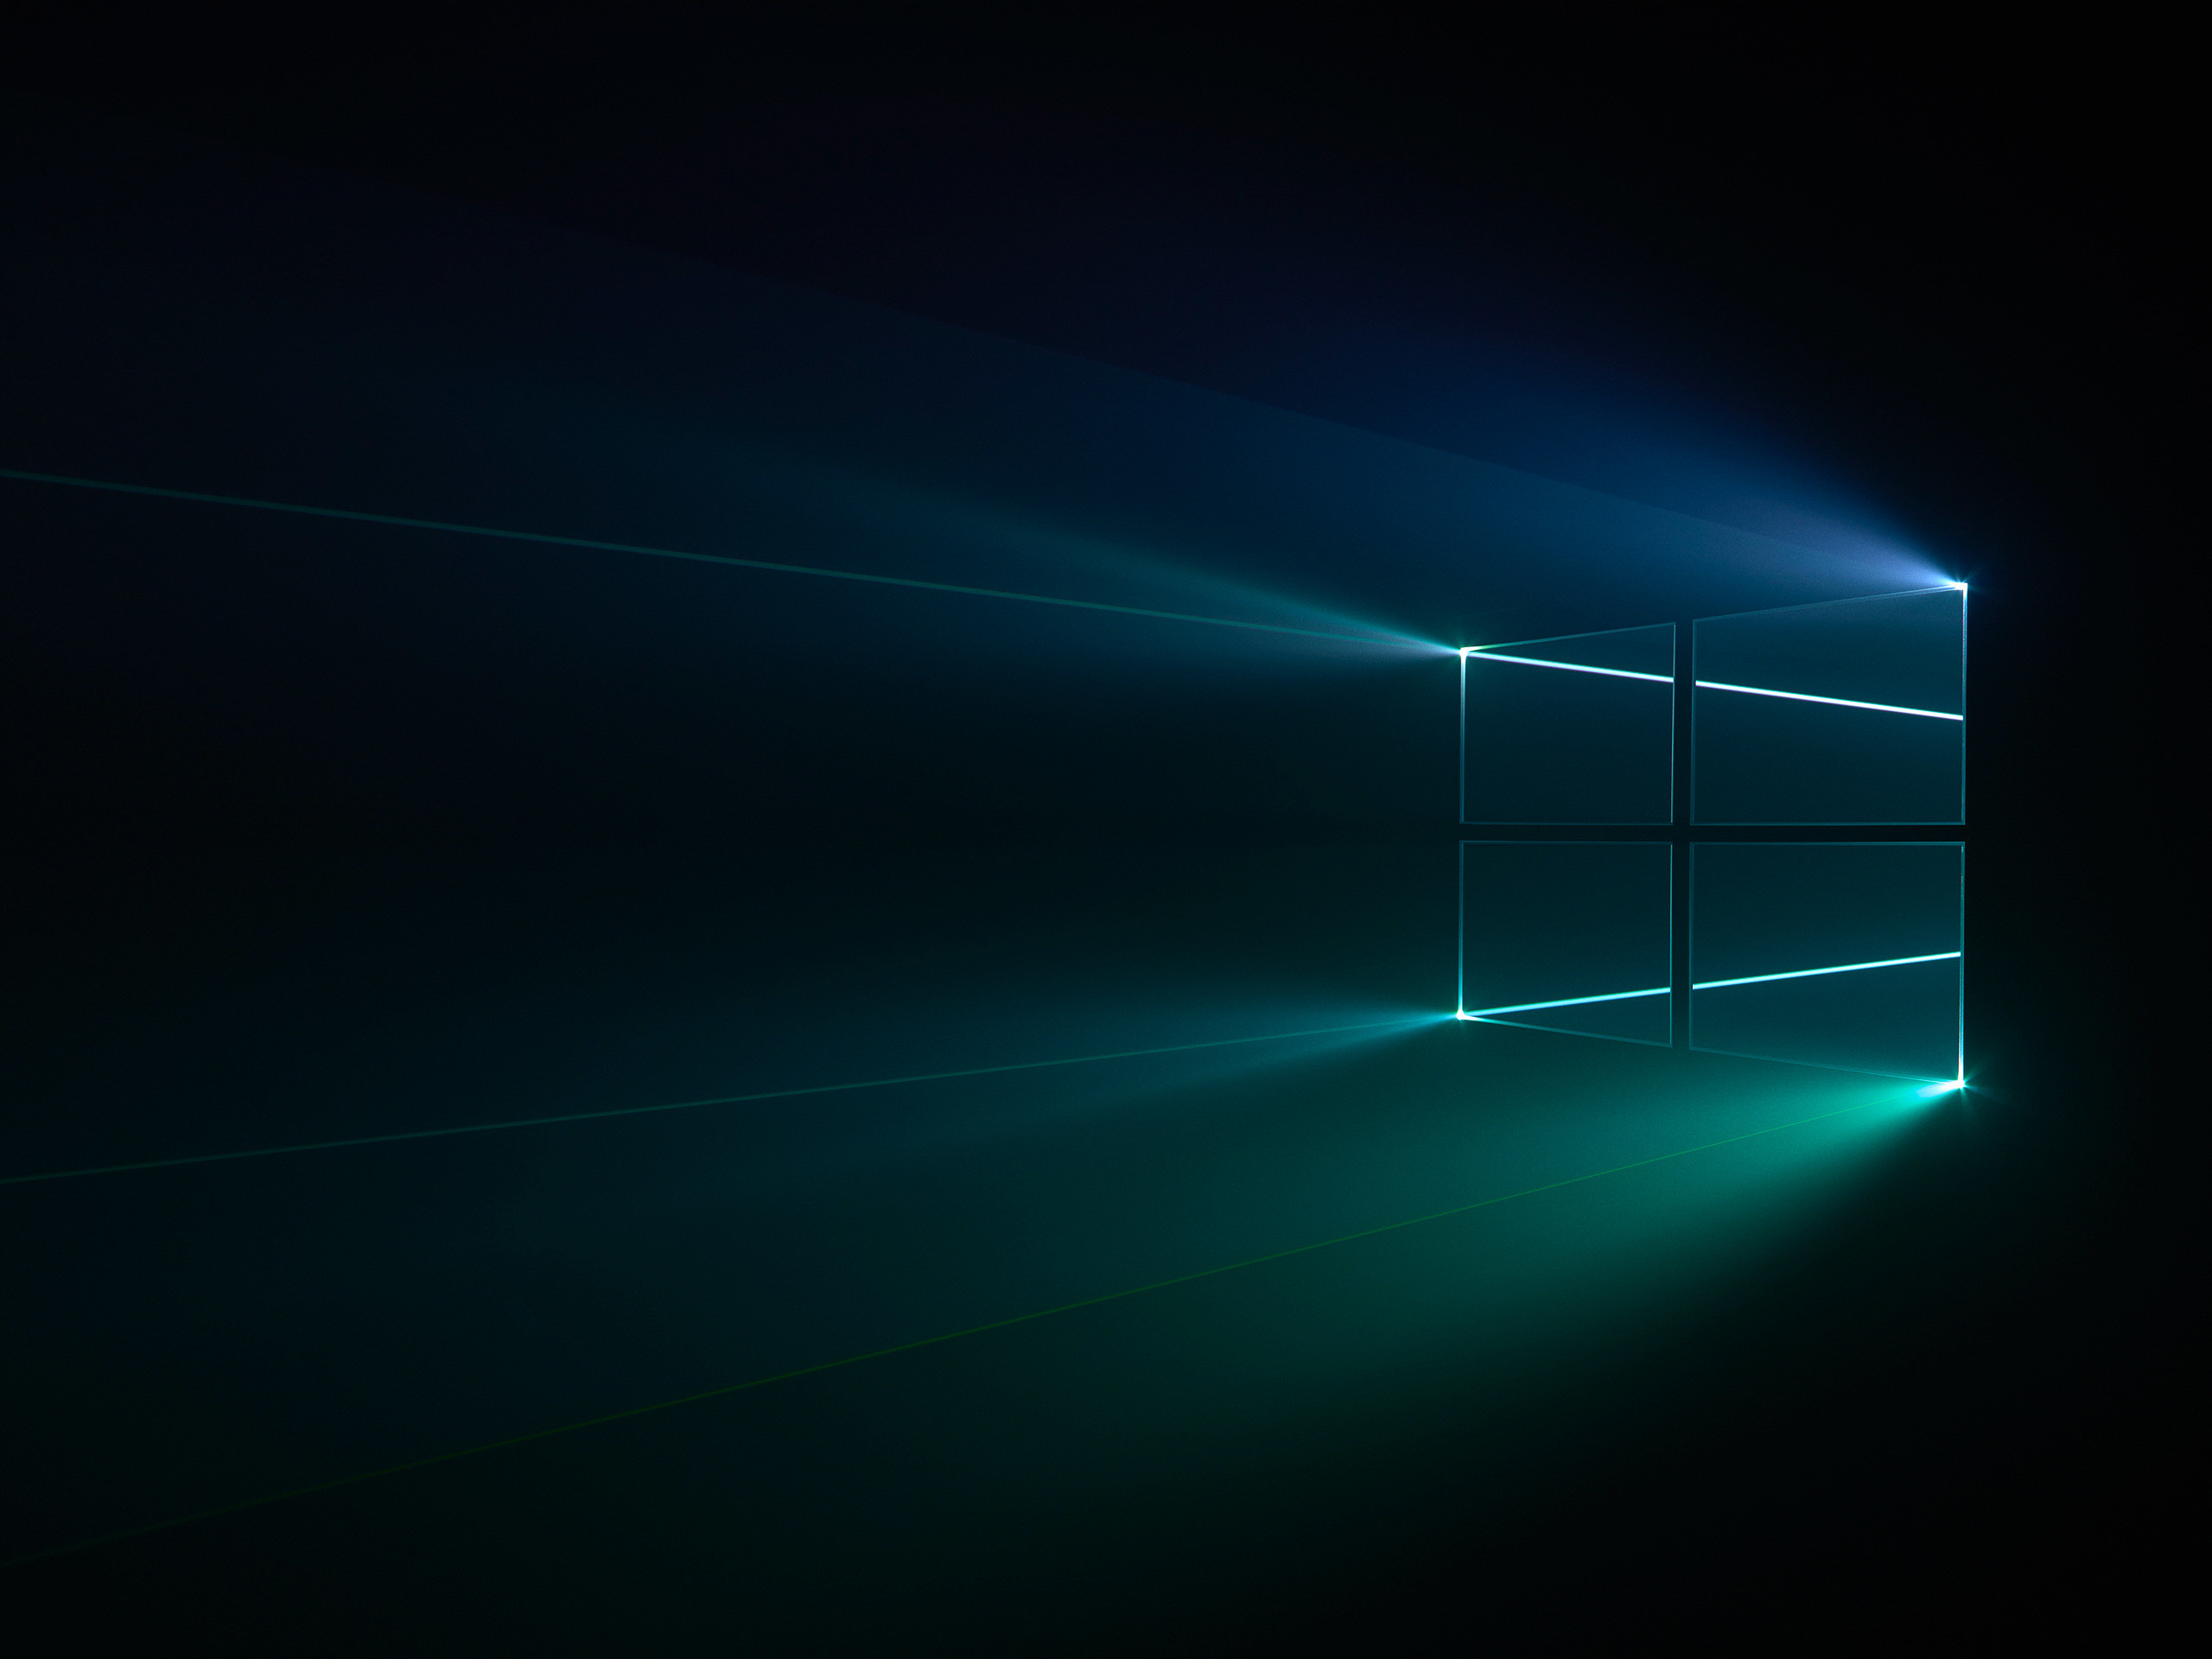 Windows 10 Hero Wallpaper Hd 70 Images